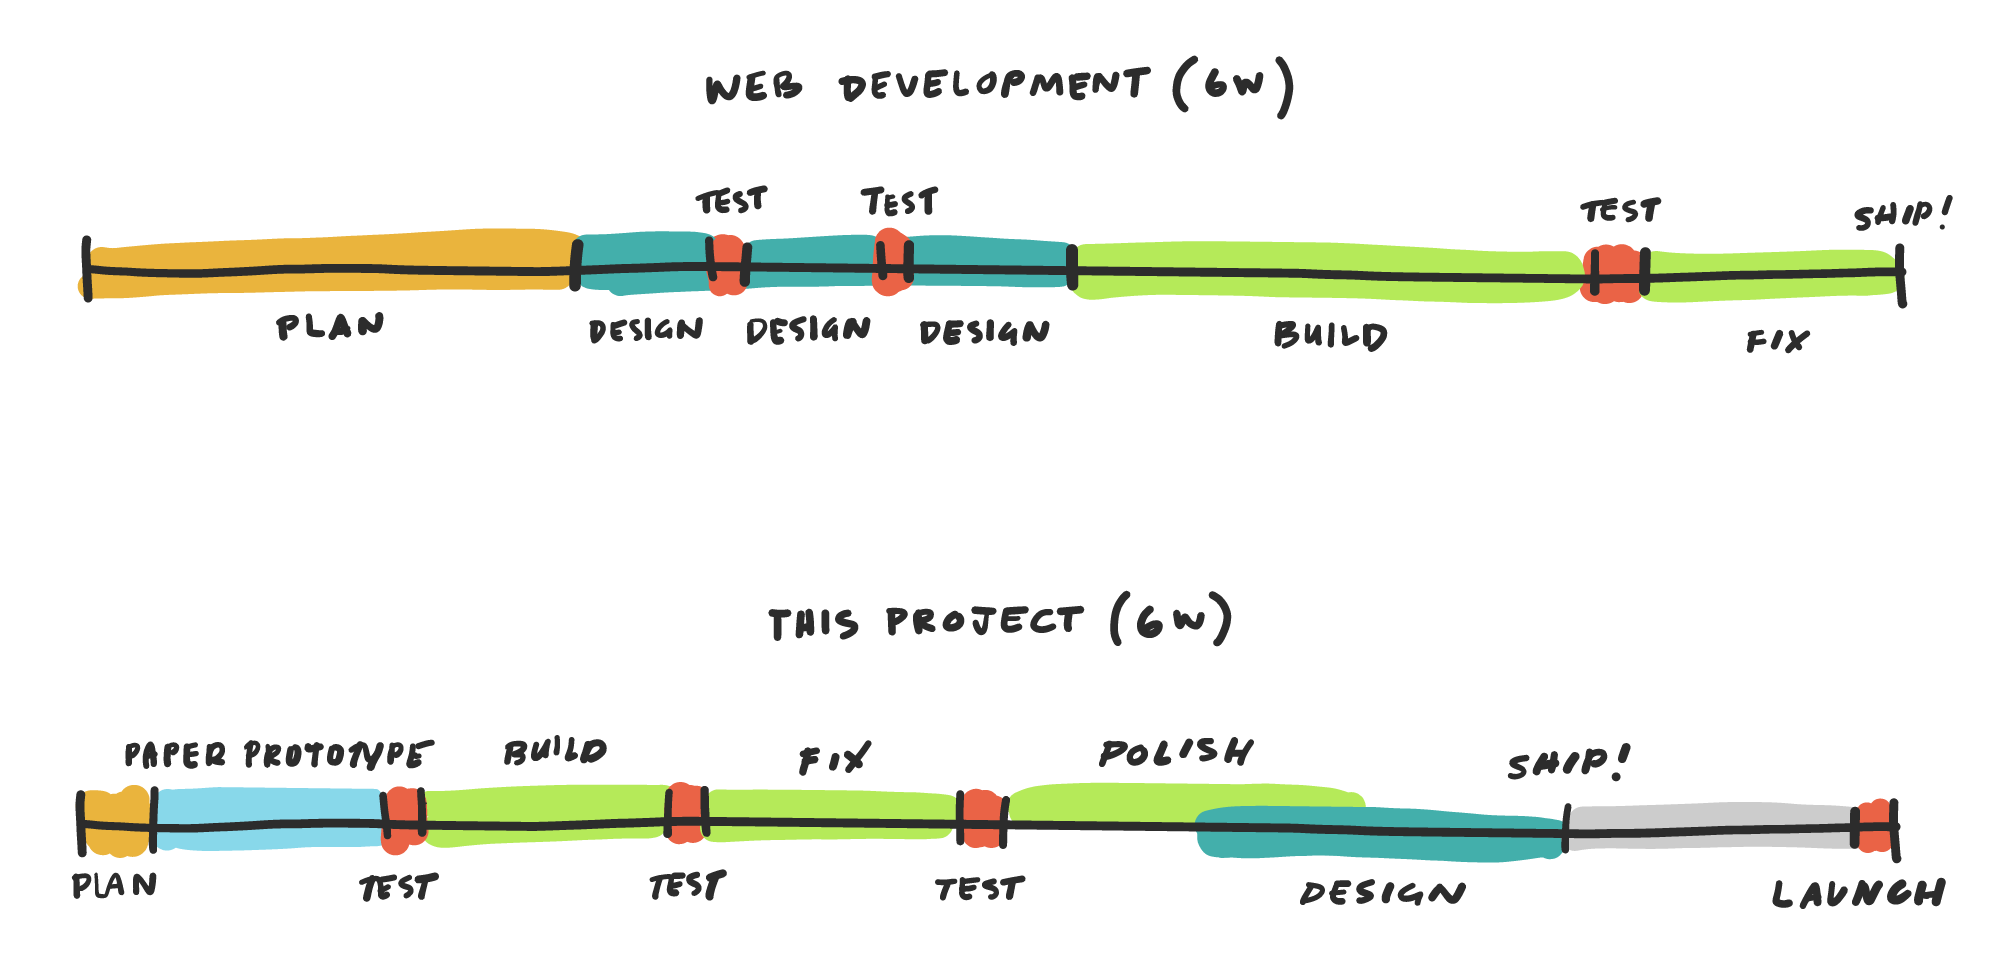 Software Development vs. Launch Timeline